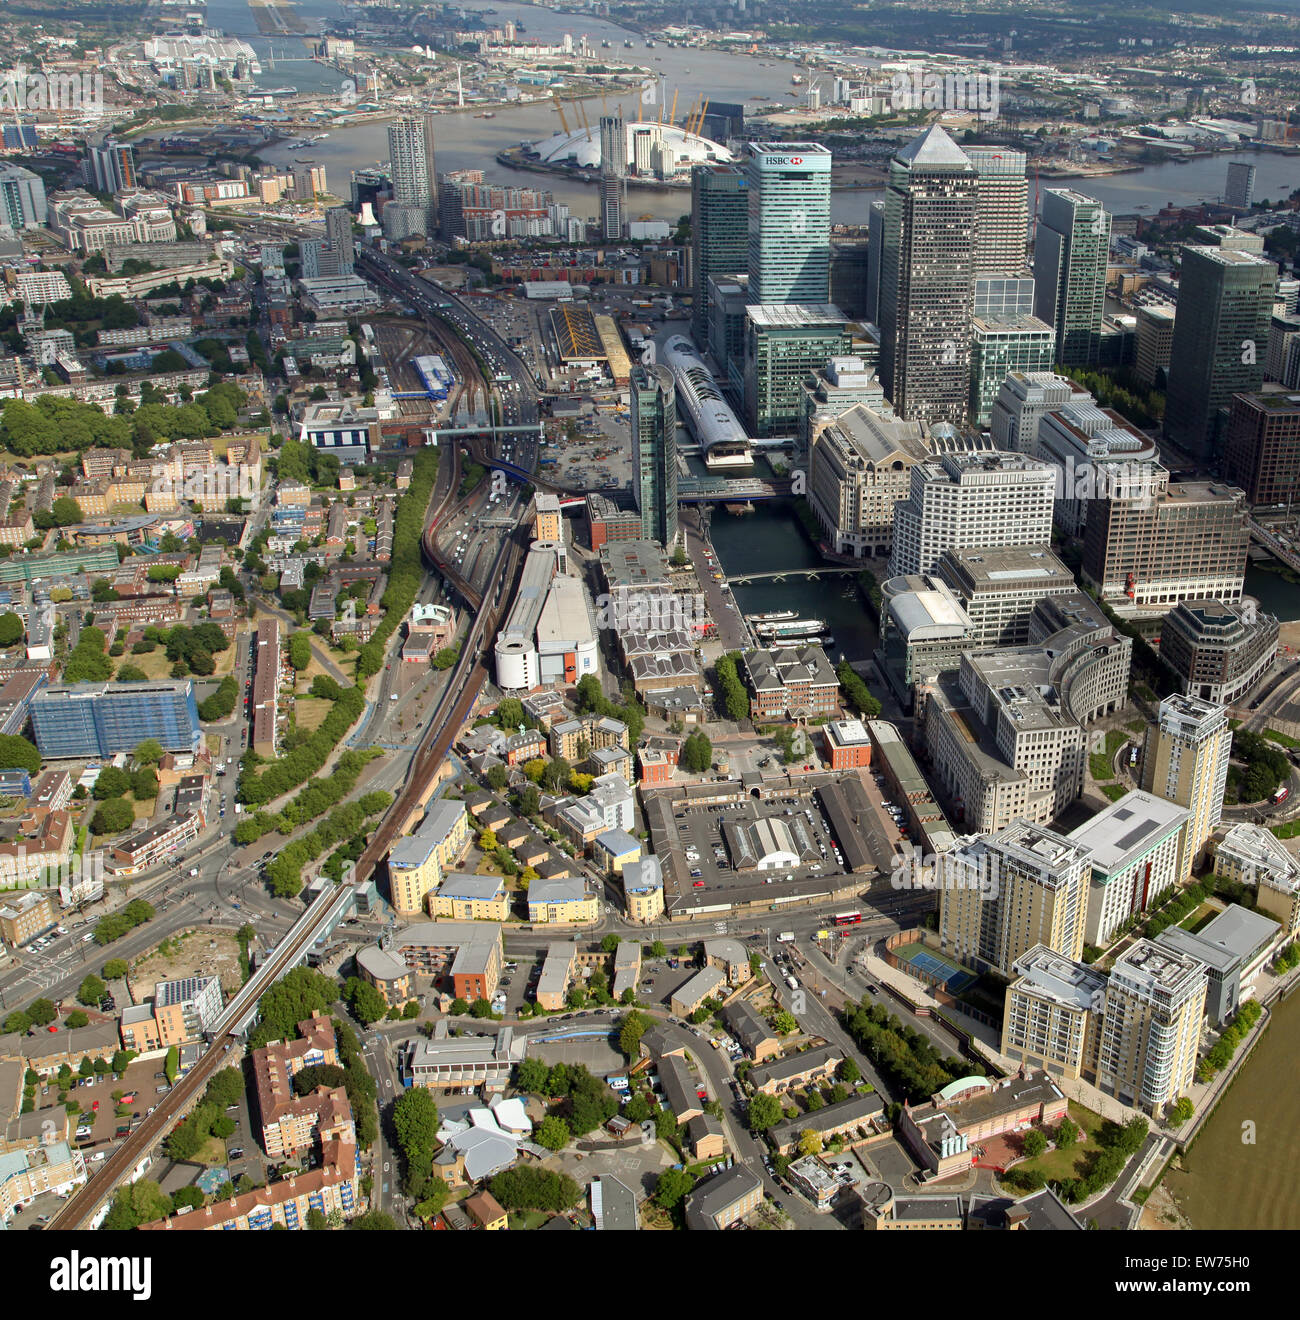 aerial view looking along the Docklands Light Railway at Westferry, Canary Wharf, East London, UK - Stock Image